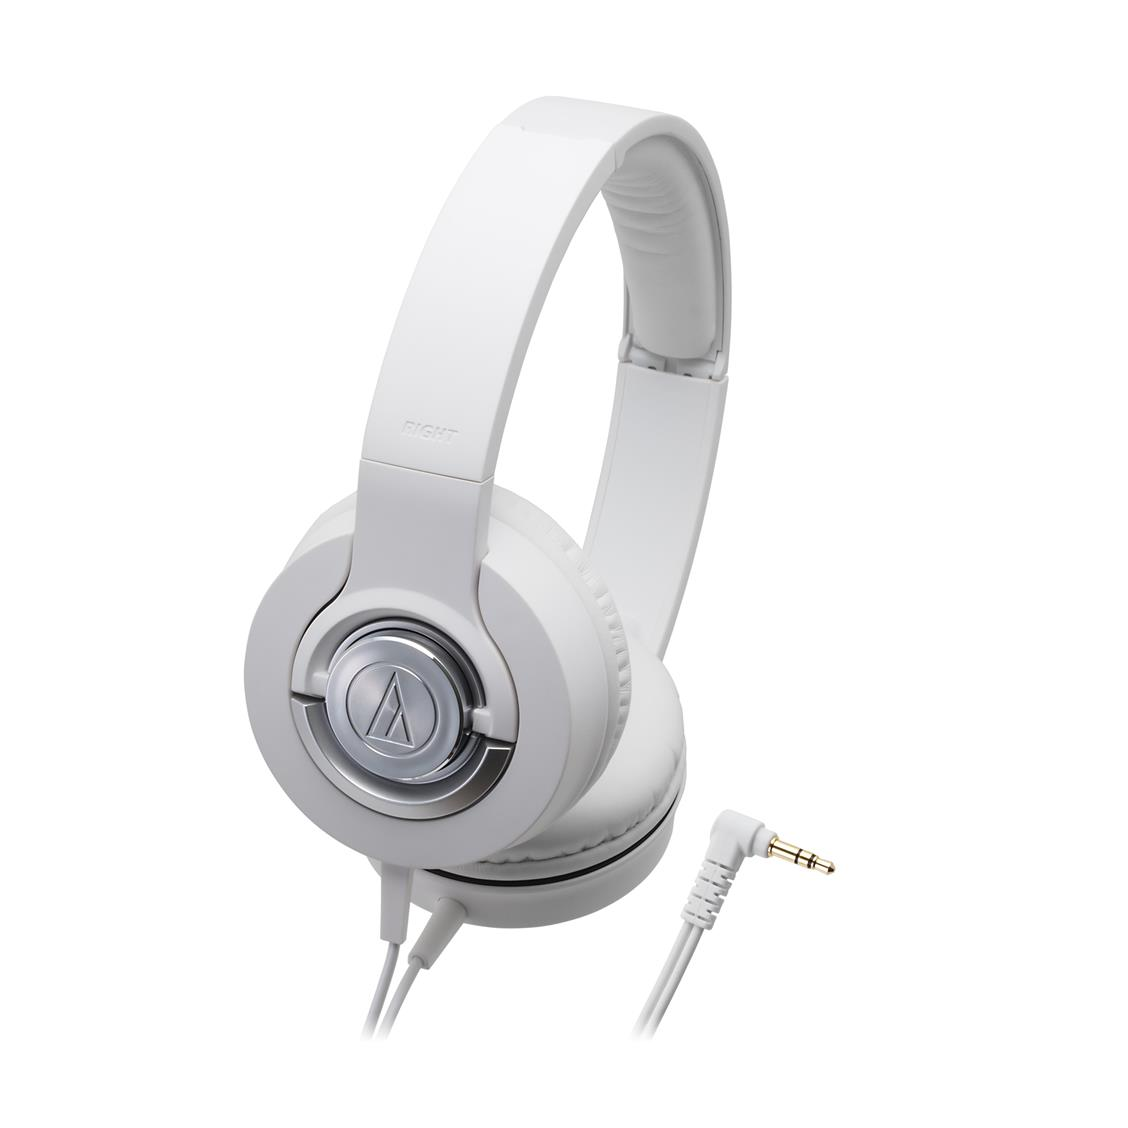 Audio Technica ATH-WS33X (WH) Solid Bass Over-Ear Headphones